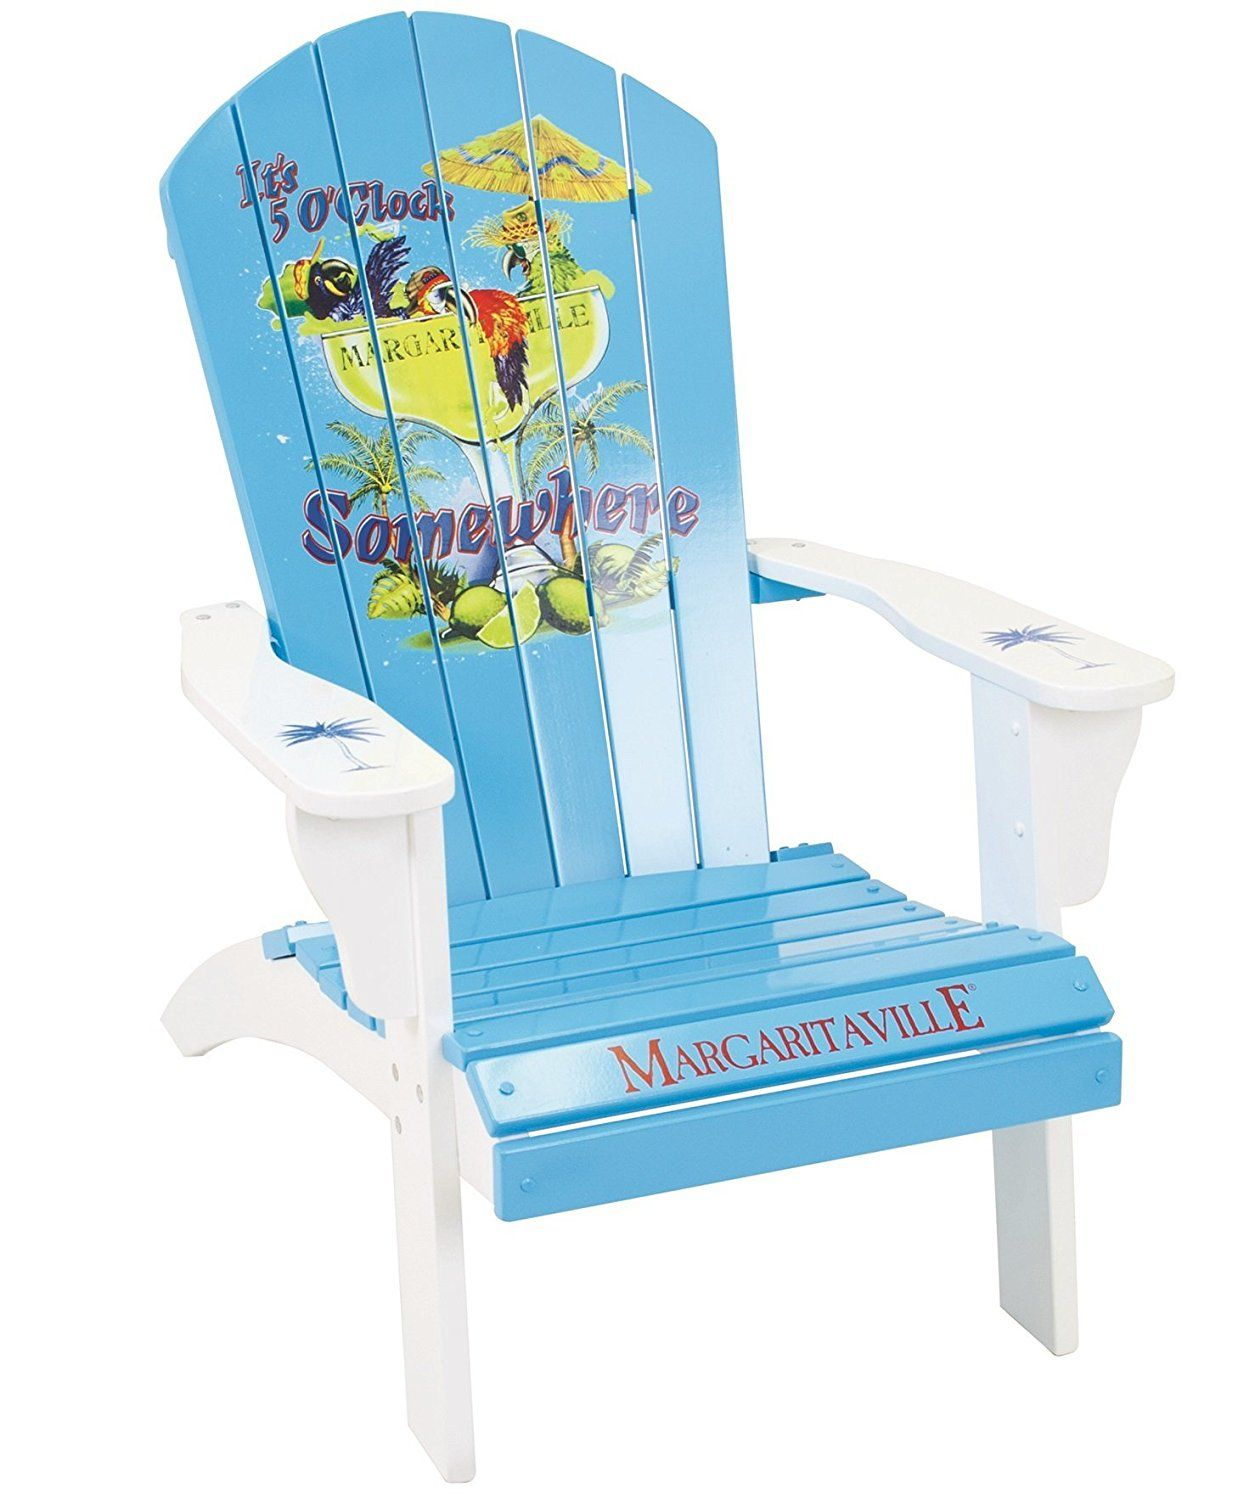 Margaritaville Outdoor Adirondack Chair It S 5